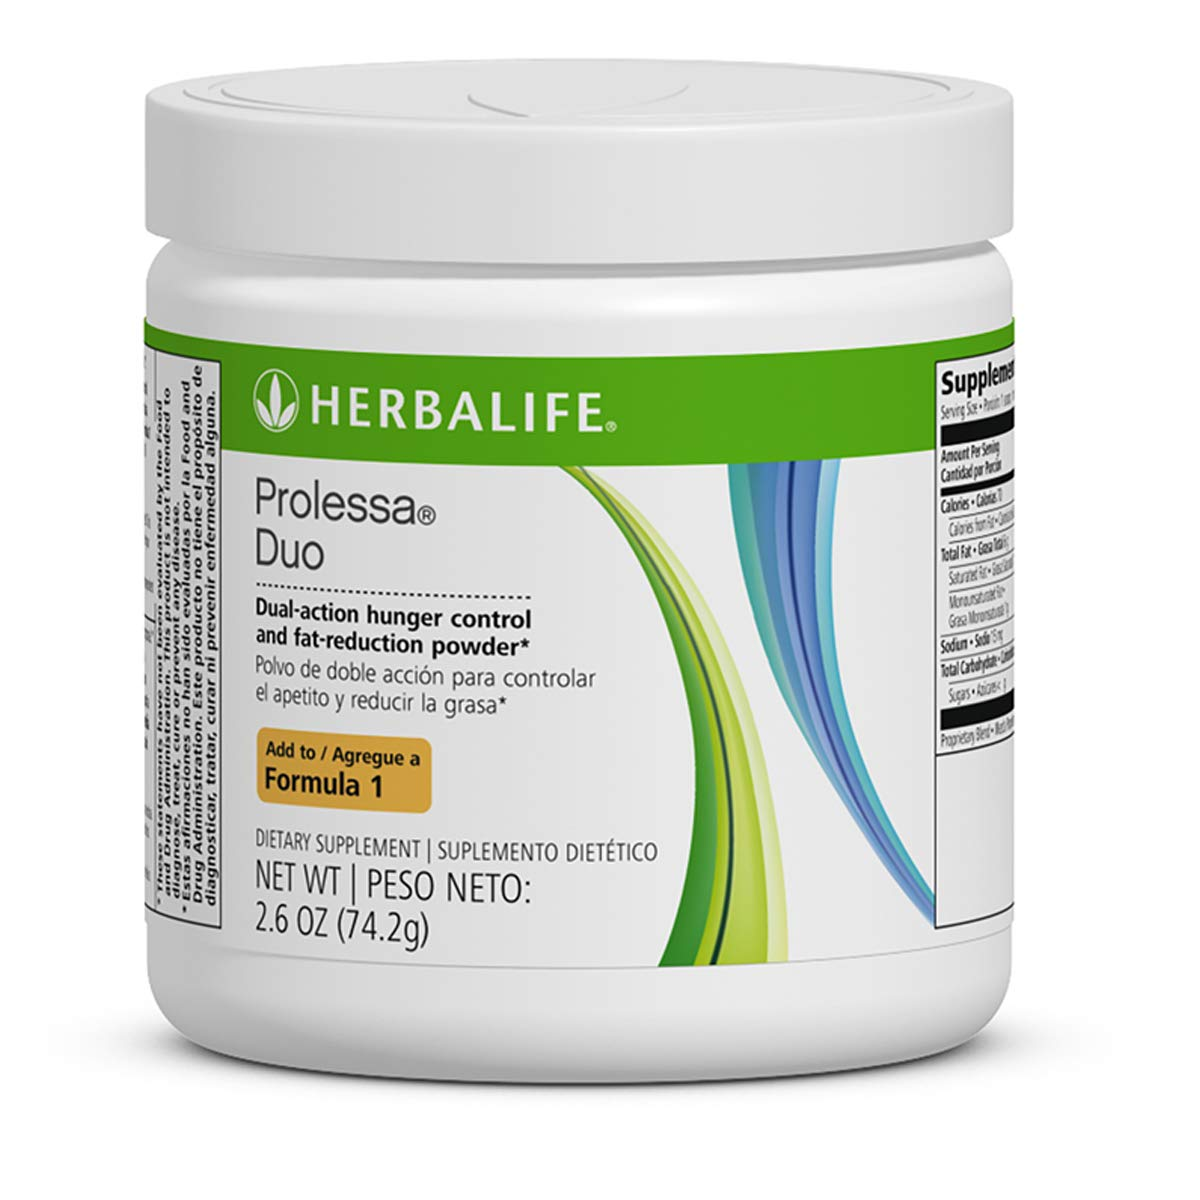 Weight-Loss Prolessa Duo 7-Day Program 2.62 oz Control ...